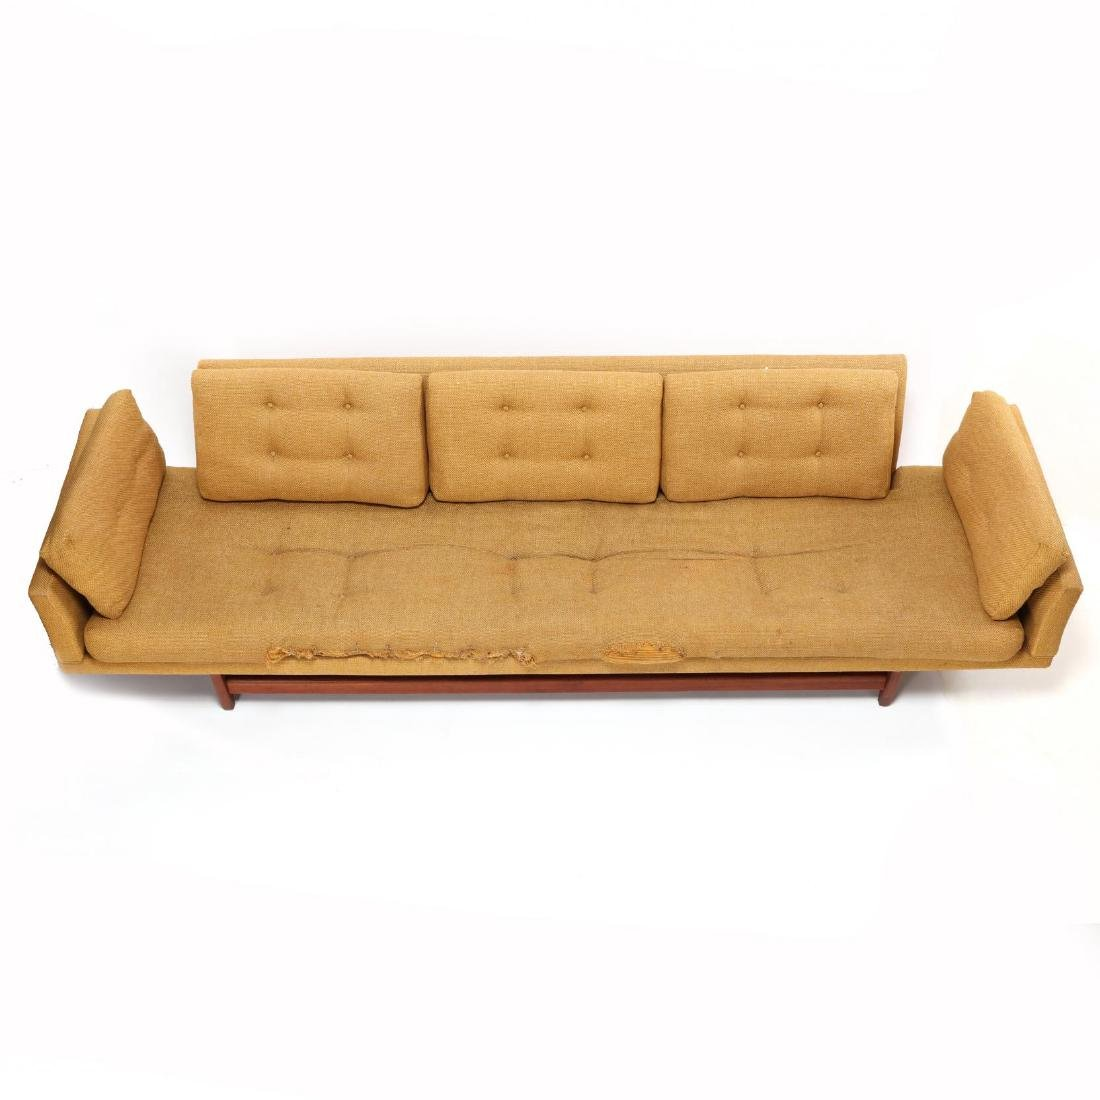 Adrian Persall, Streamlined Modernist Sofa - 2